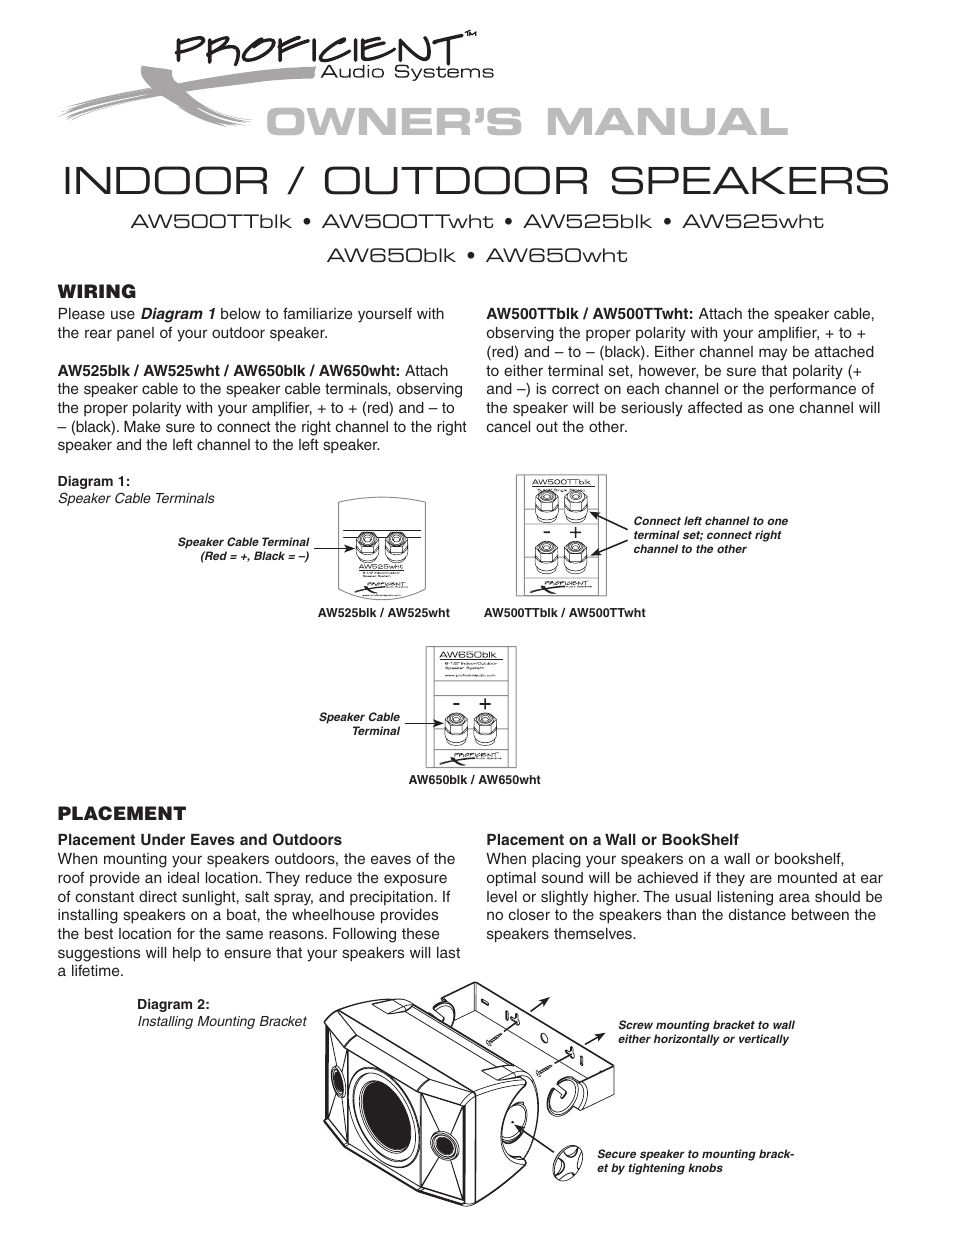 Proficient Audio Systems Aw650blk User Manual 2 Pages Also For Schematic Diagram2 Channels Same As Below Aw525blk Aw525wht Aw500ttblk Aw650wht